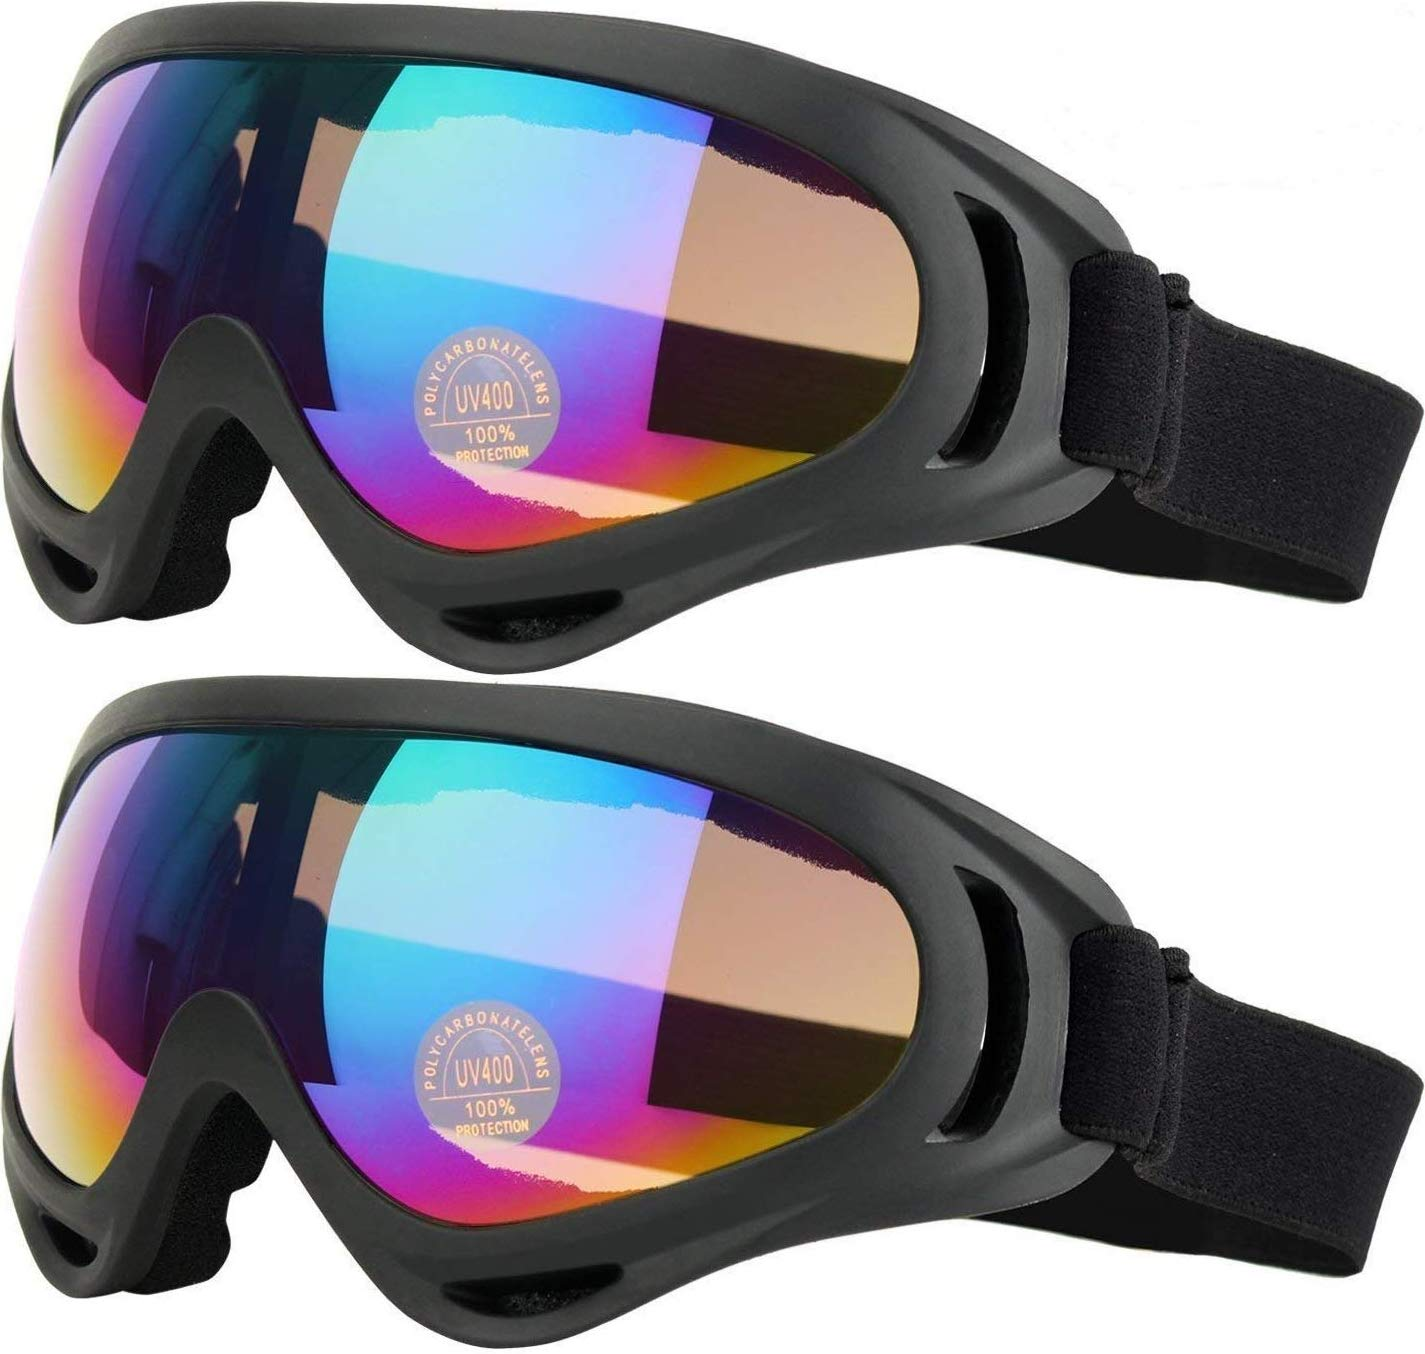 cooloo-ski-goggles-render-cropped